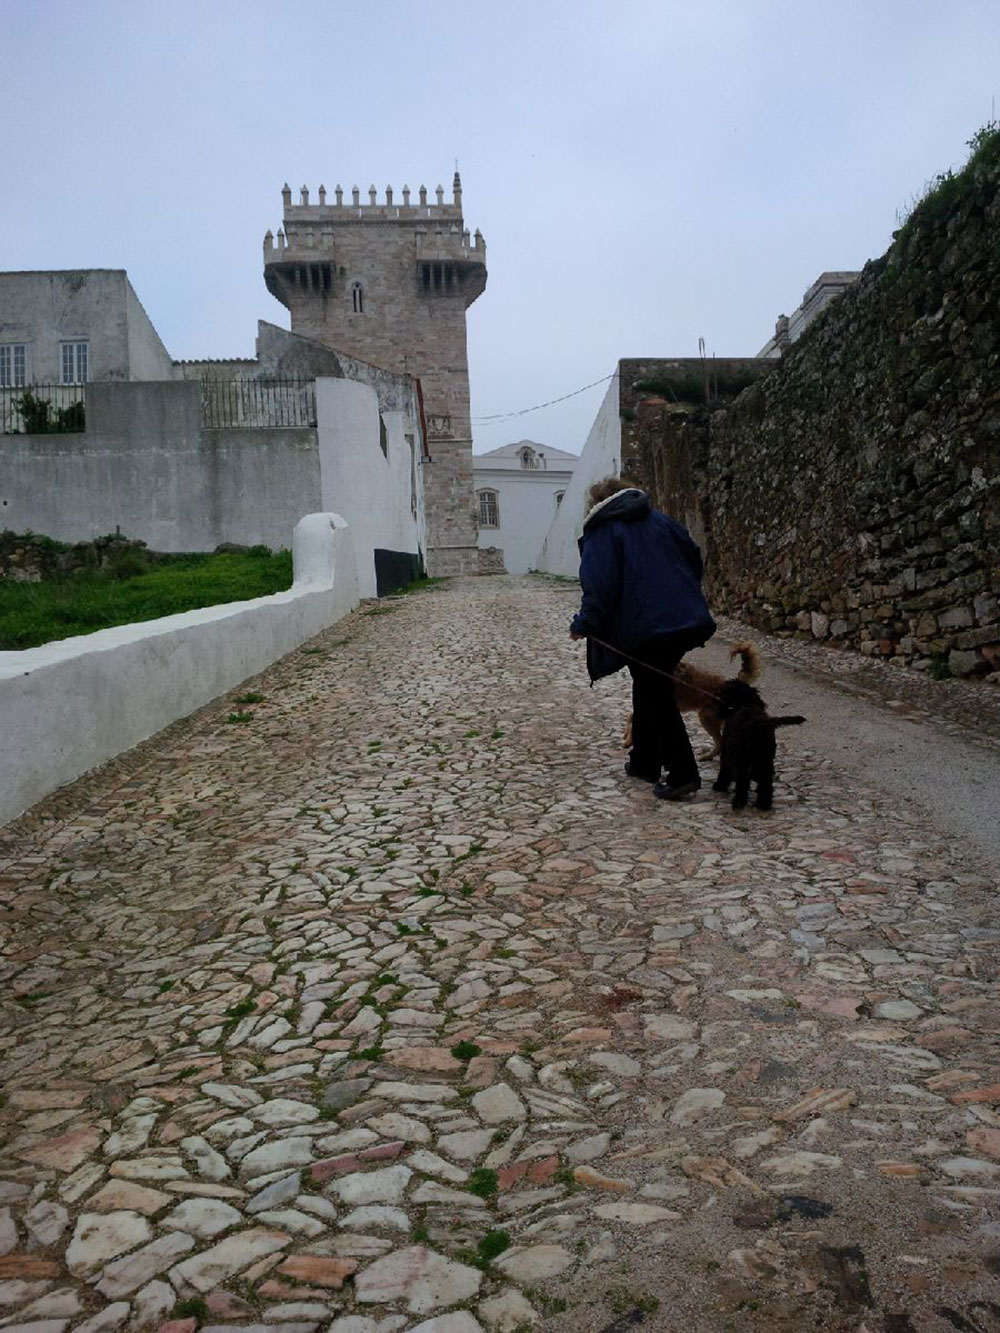 The pousada offers a super dog-walking environment